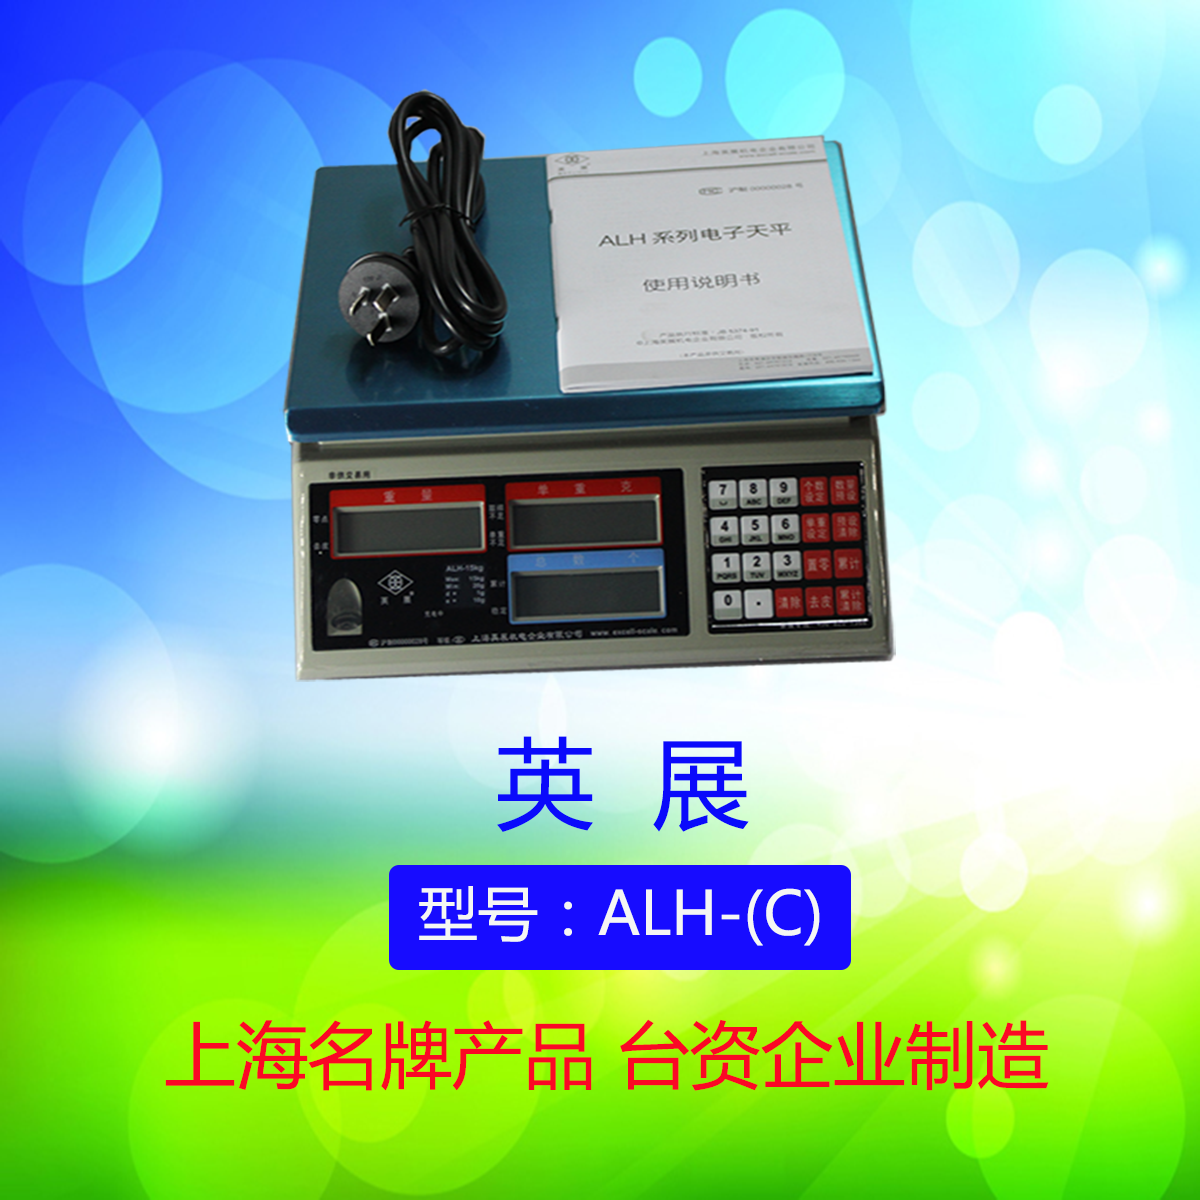 British electronic counting scale electronic weight scale shanghai british exhibition electronic scales electronic scale electronic counting tables scale table